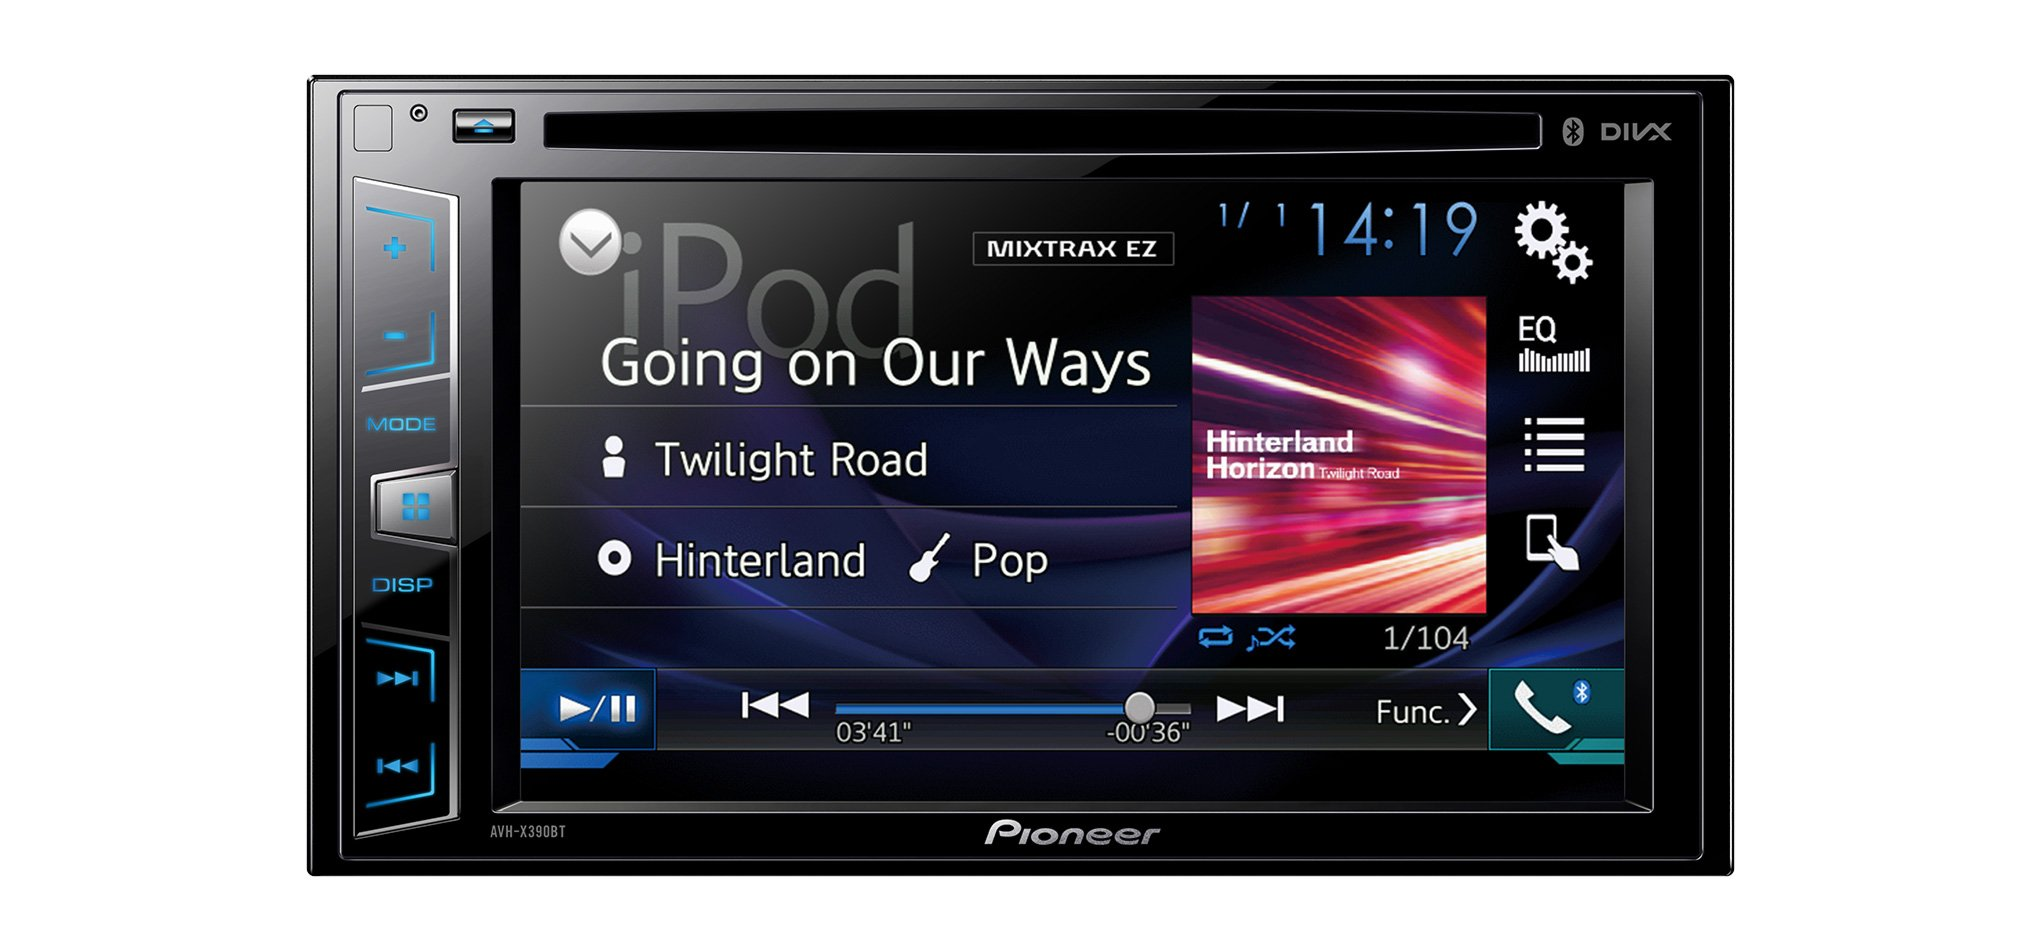 "Pioneer AVH-X390BT - Pantalla Multimedia Doble, Bluetooth, pantalla táctil WVGA de 6.2"" Clear Type, salida 4 V, color negro product image"